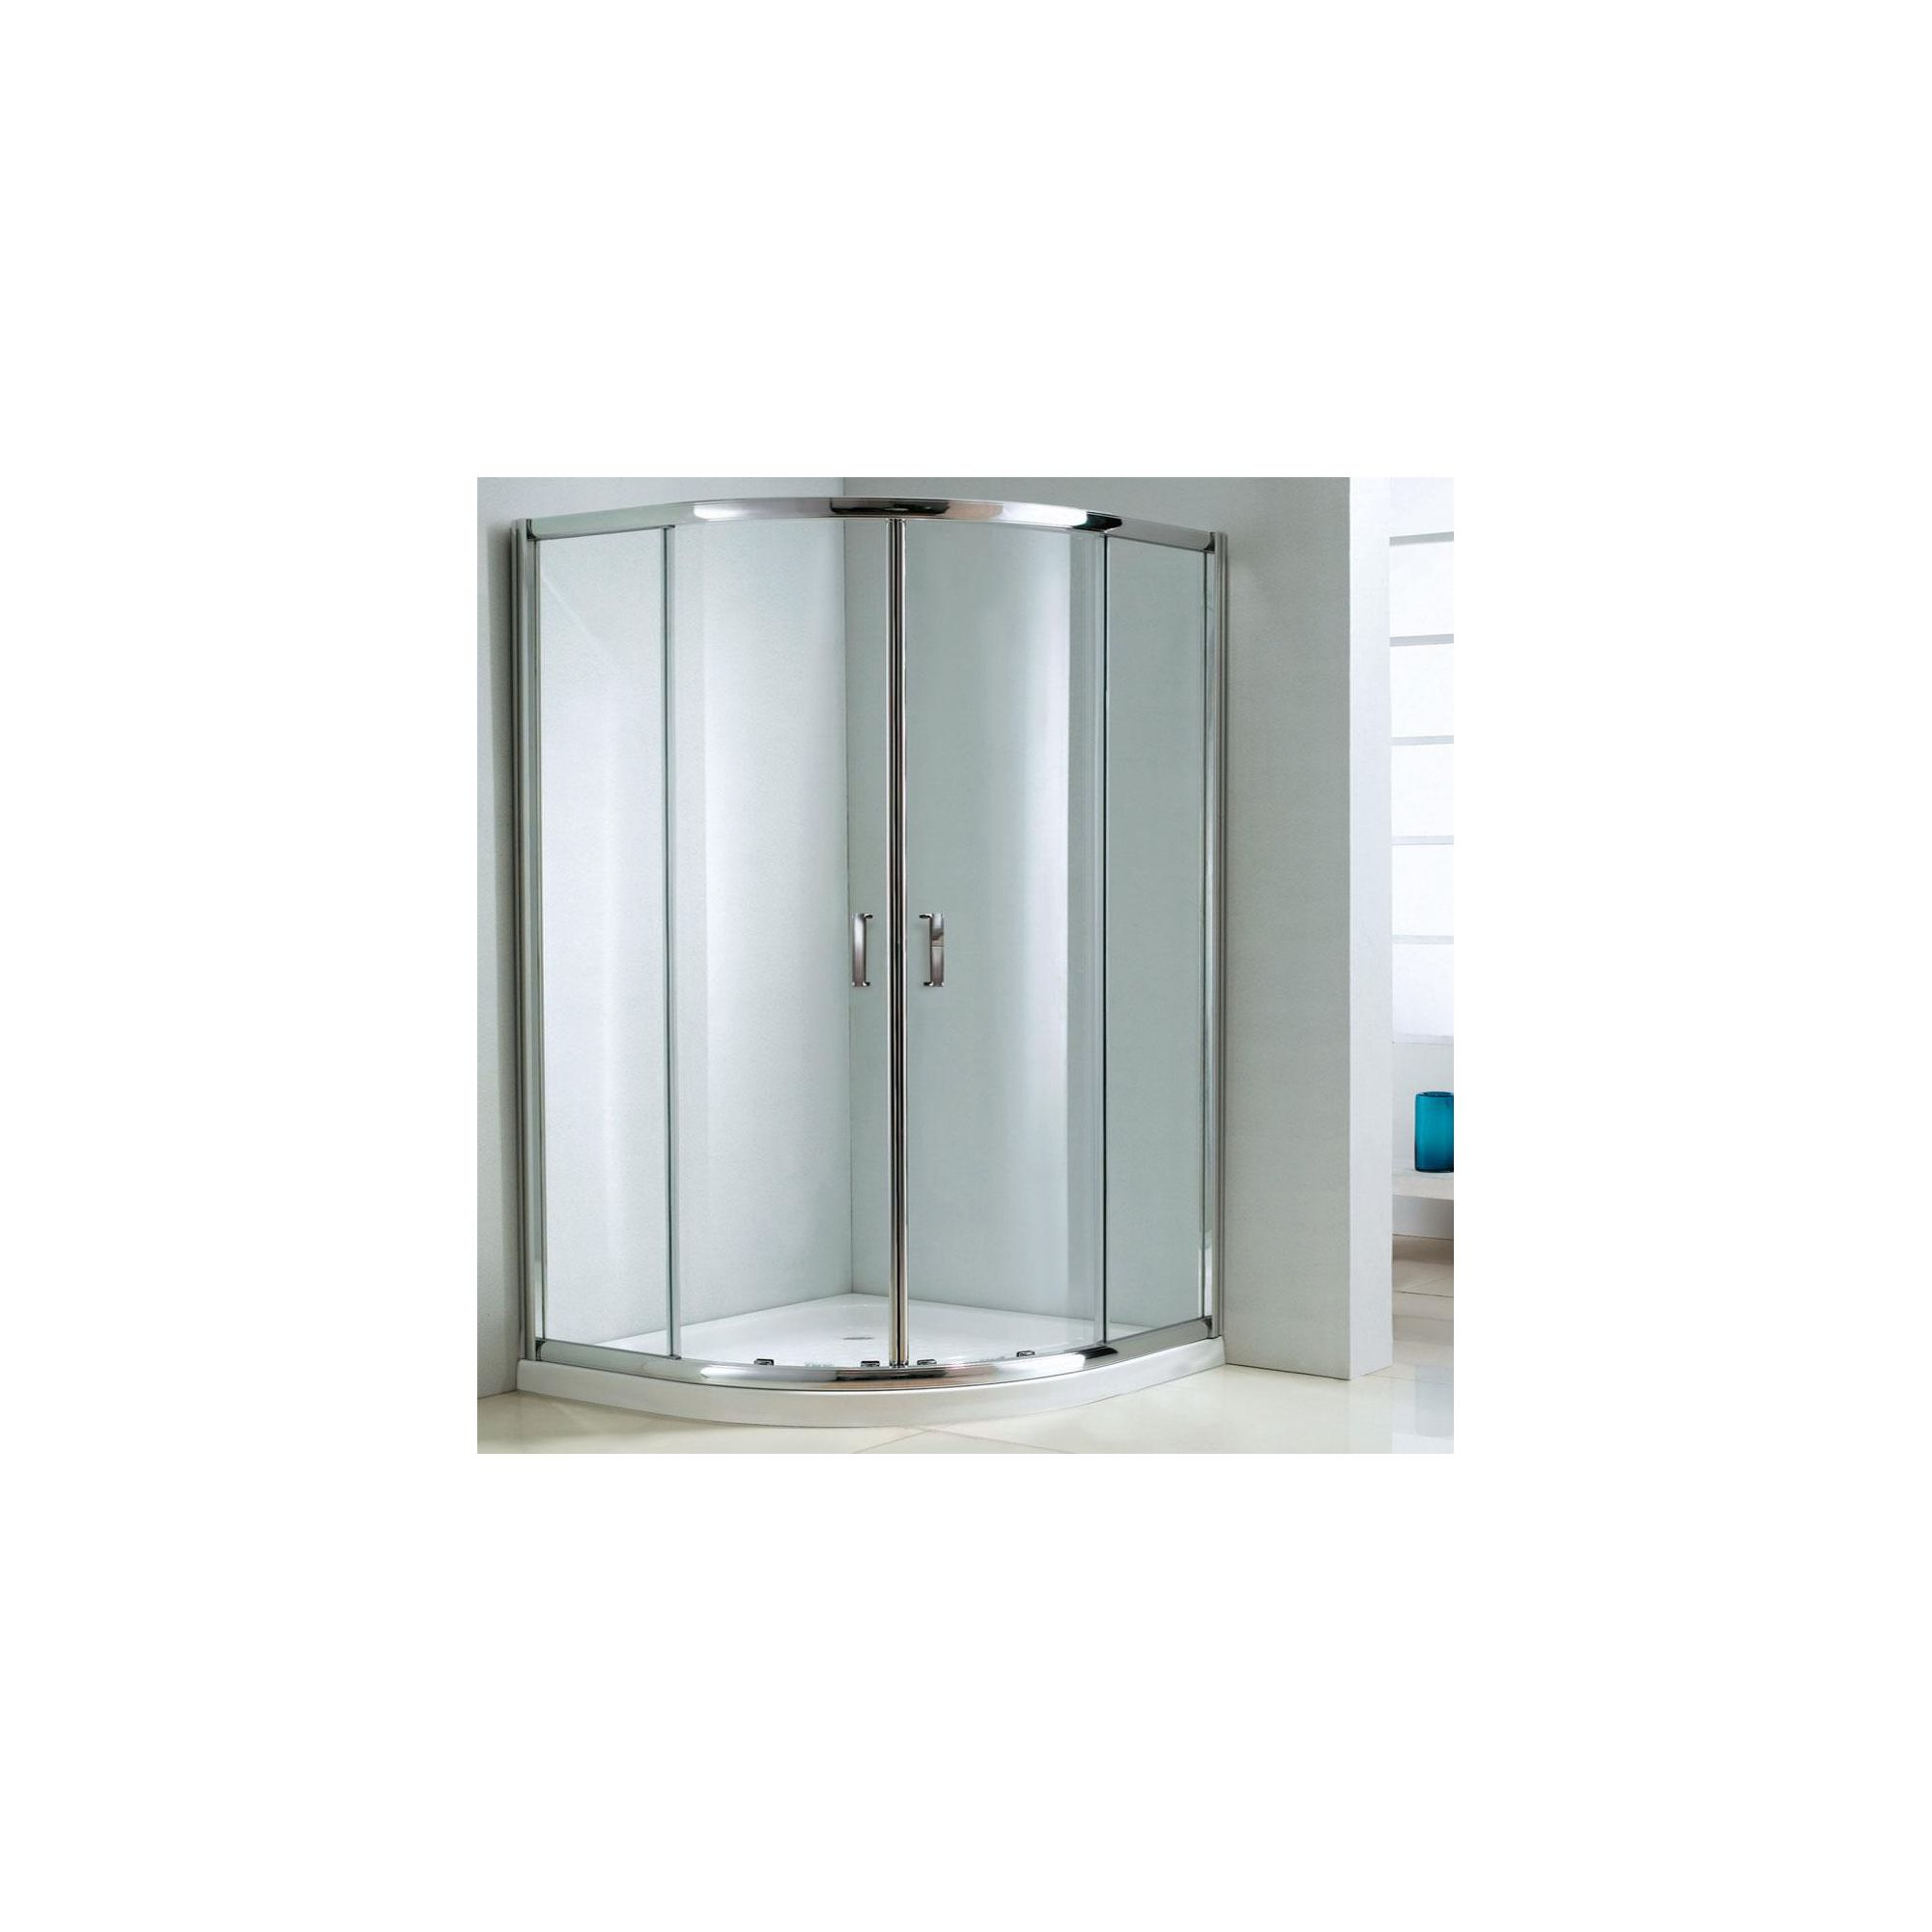 Duchy Style Double Offset Quadrant Door Shower Enclosure, 1000mm x 800mm, 6mm Glass, Low Profile Tray, Right Handed at Tesco Direct